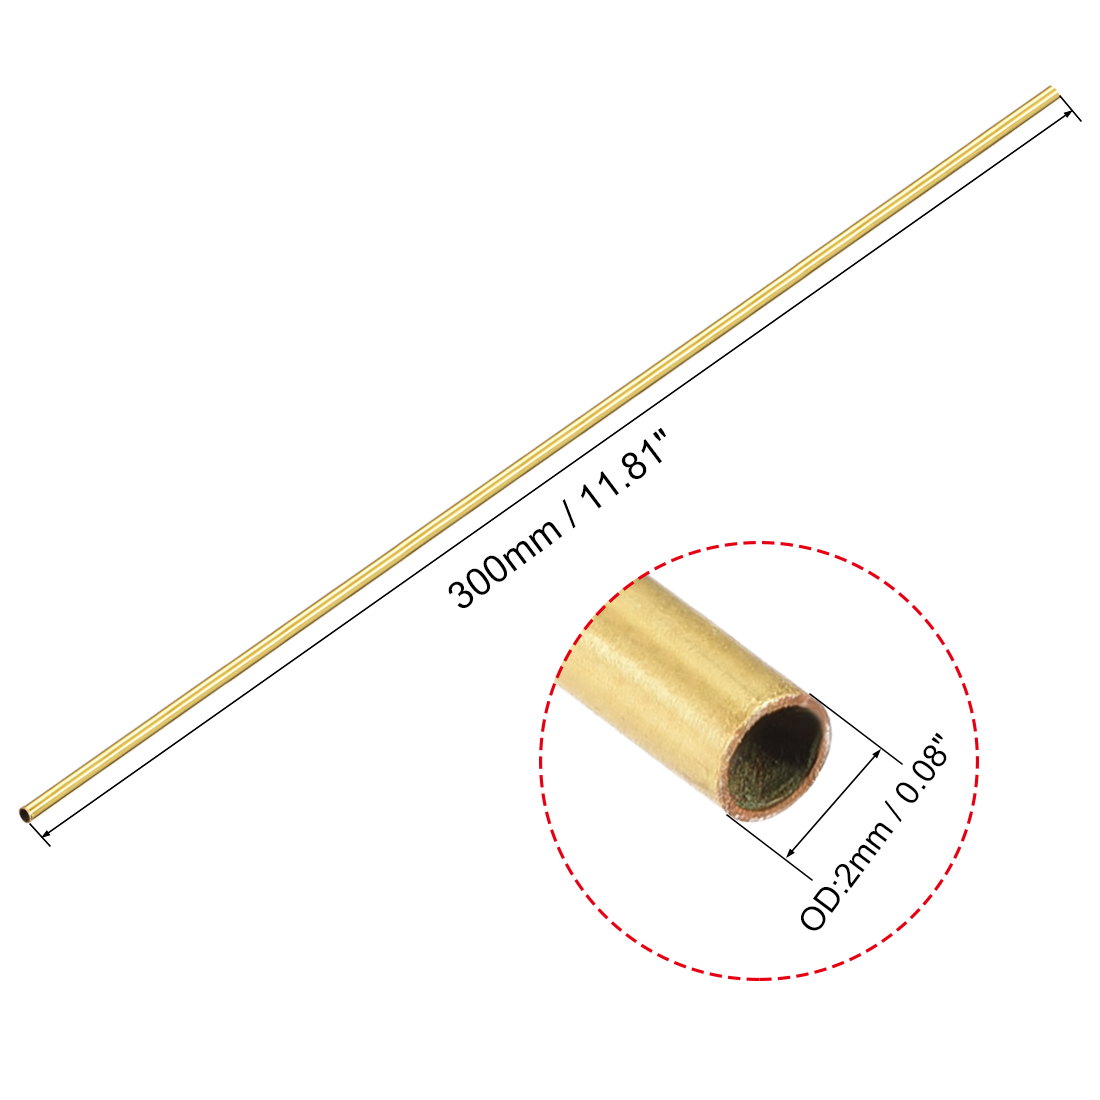 Uxcell Brass Round Tube 300mm Length 2mm OD 0.2mm Wall Thickness Seamless Straight Pipe Tubing 2 Pcs